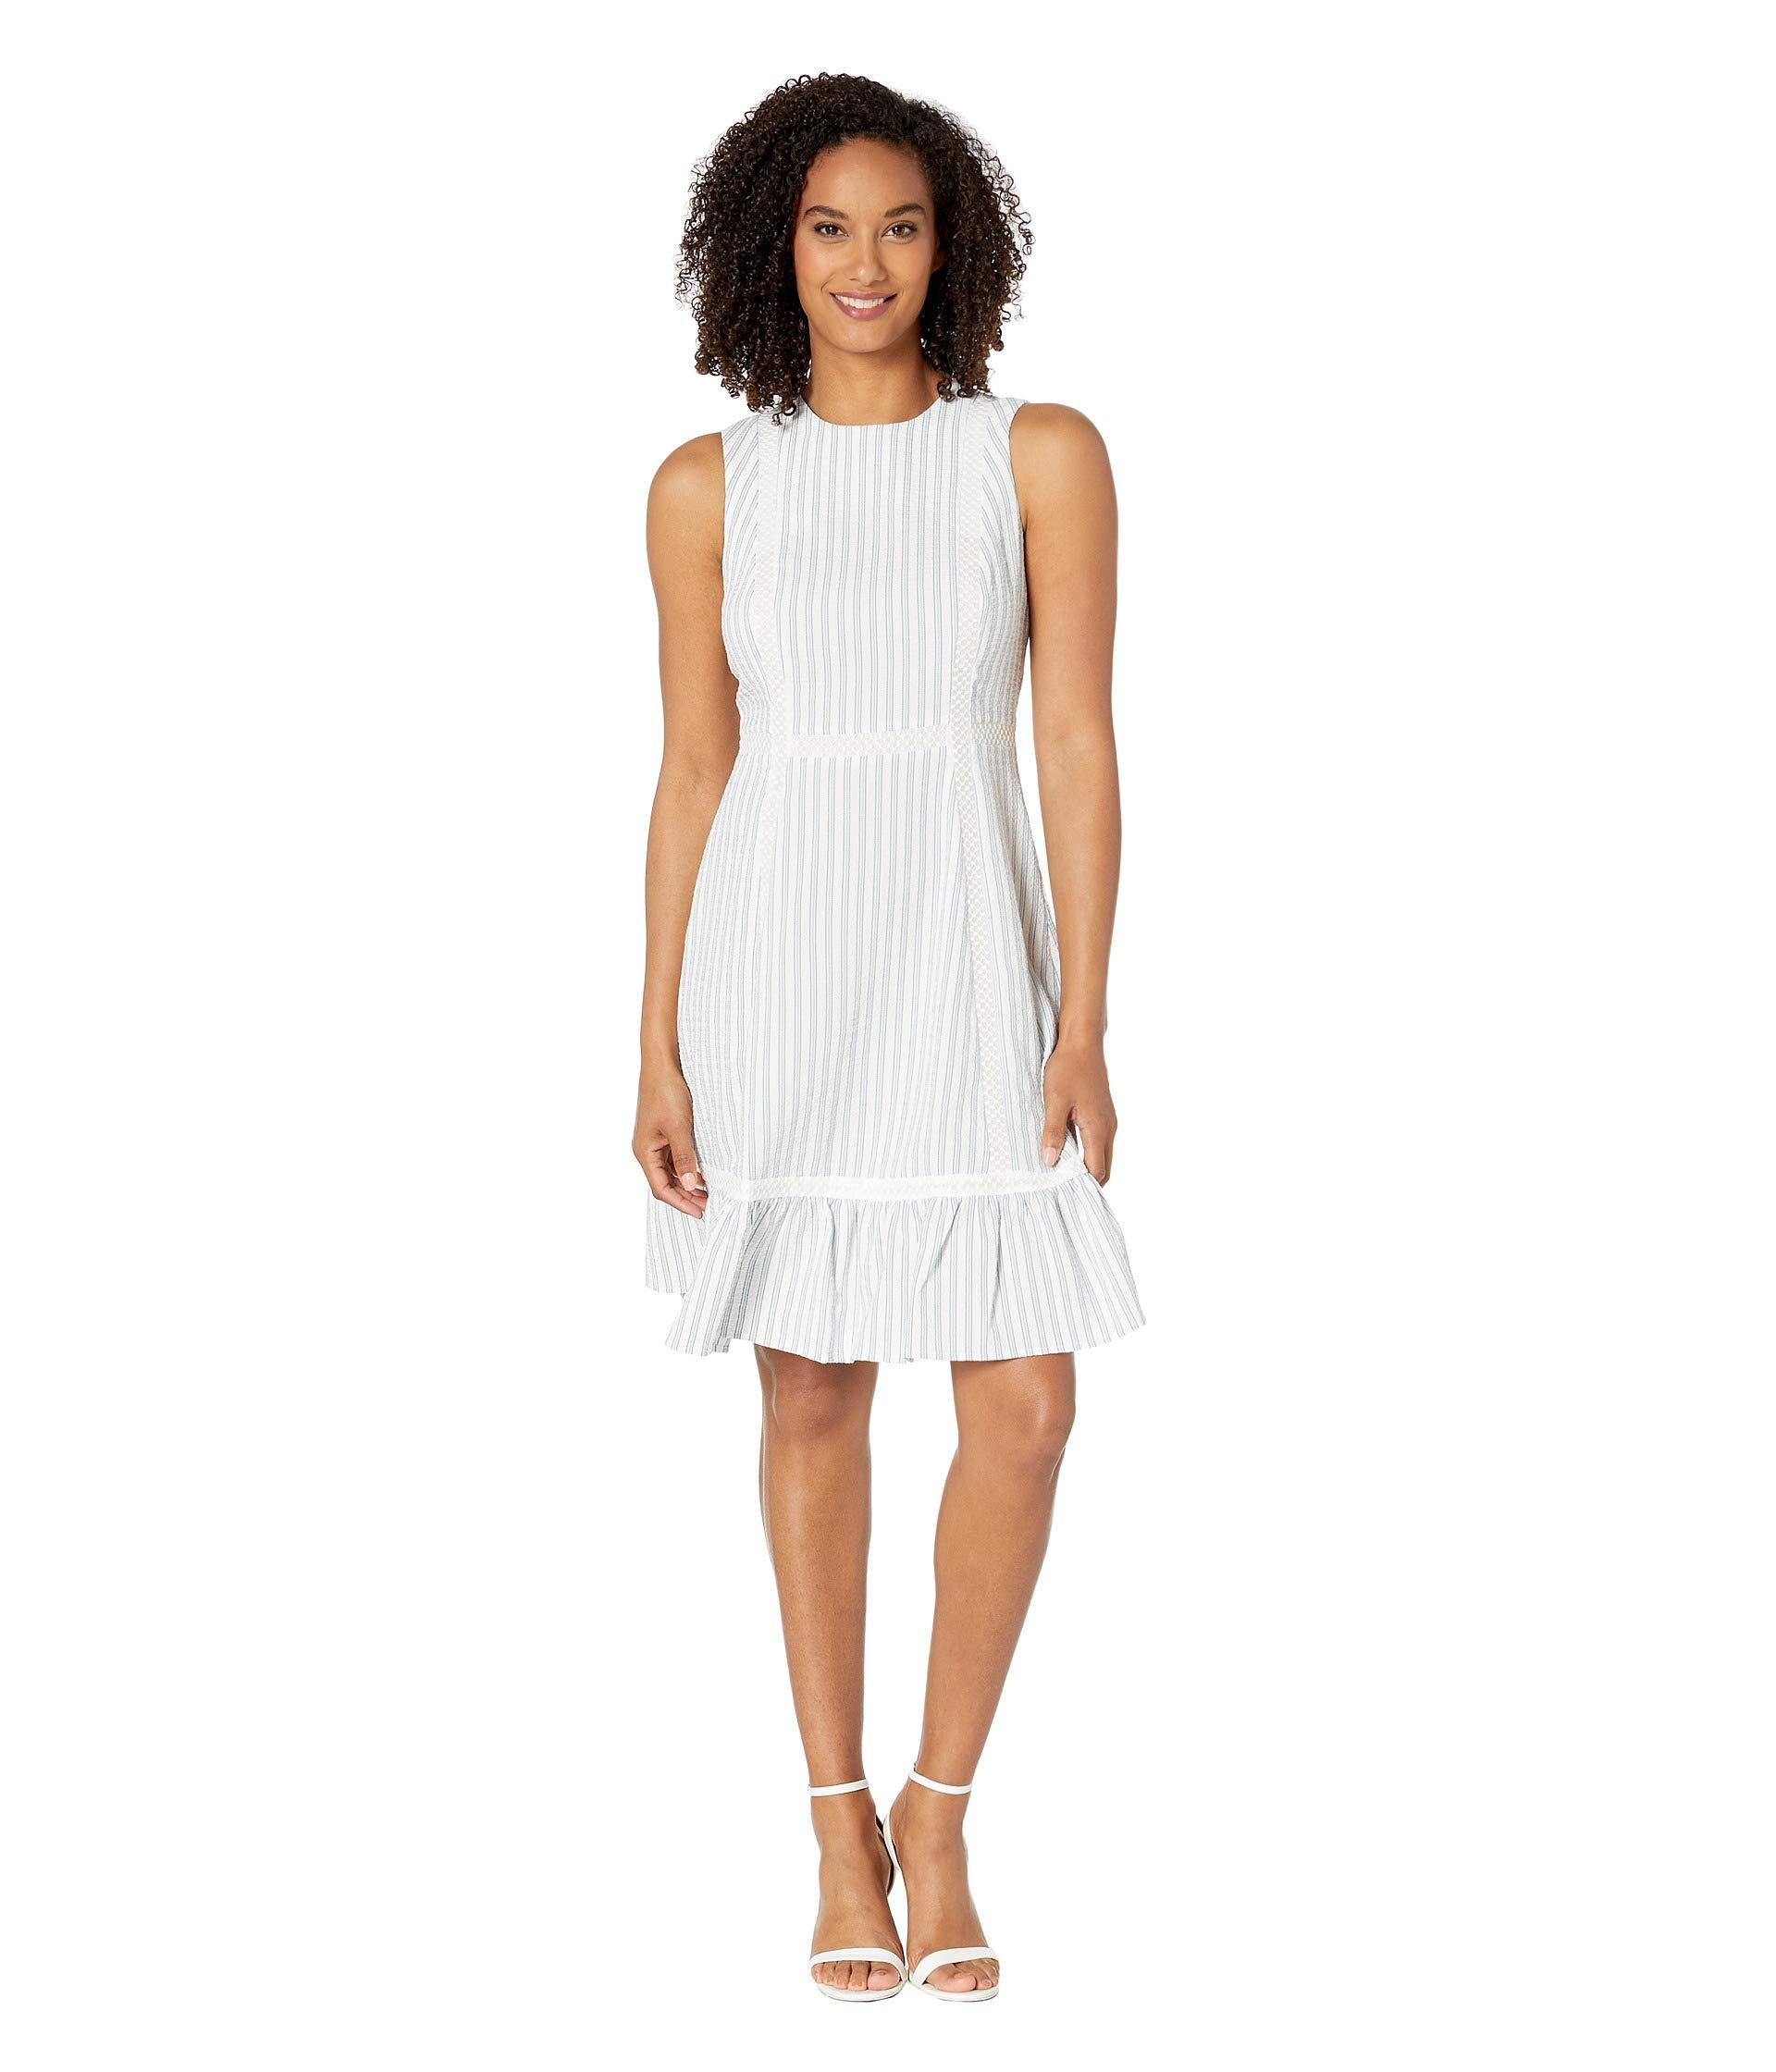 dce11952 Lyst - Calvin Klein Novelty Dress W/ Ruffle Hem (white/blue) Women's ...